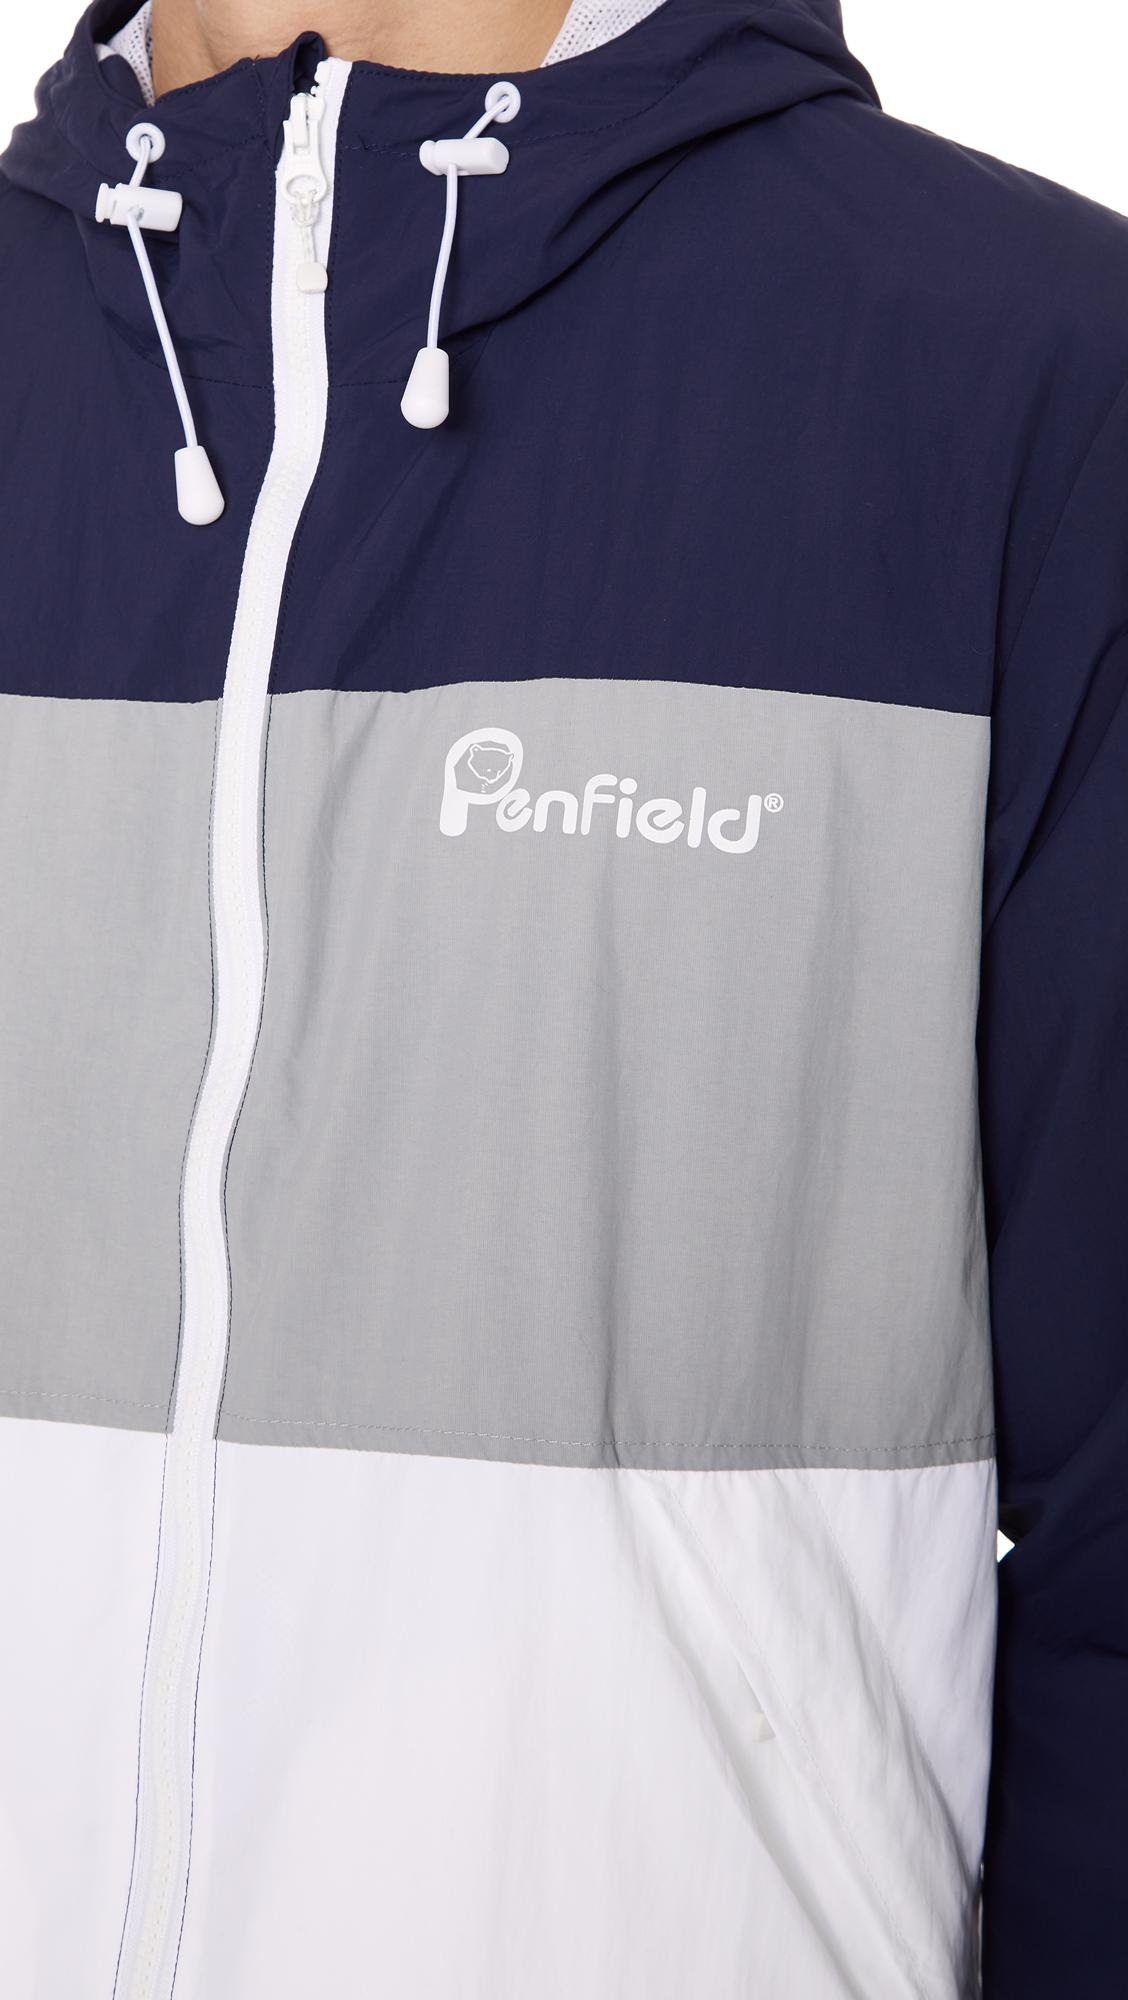 Penfield Synthetic Alosa Jacket for Men